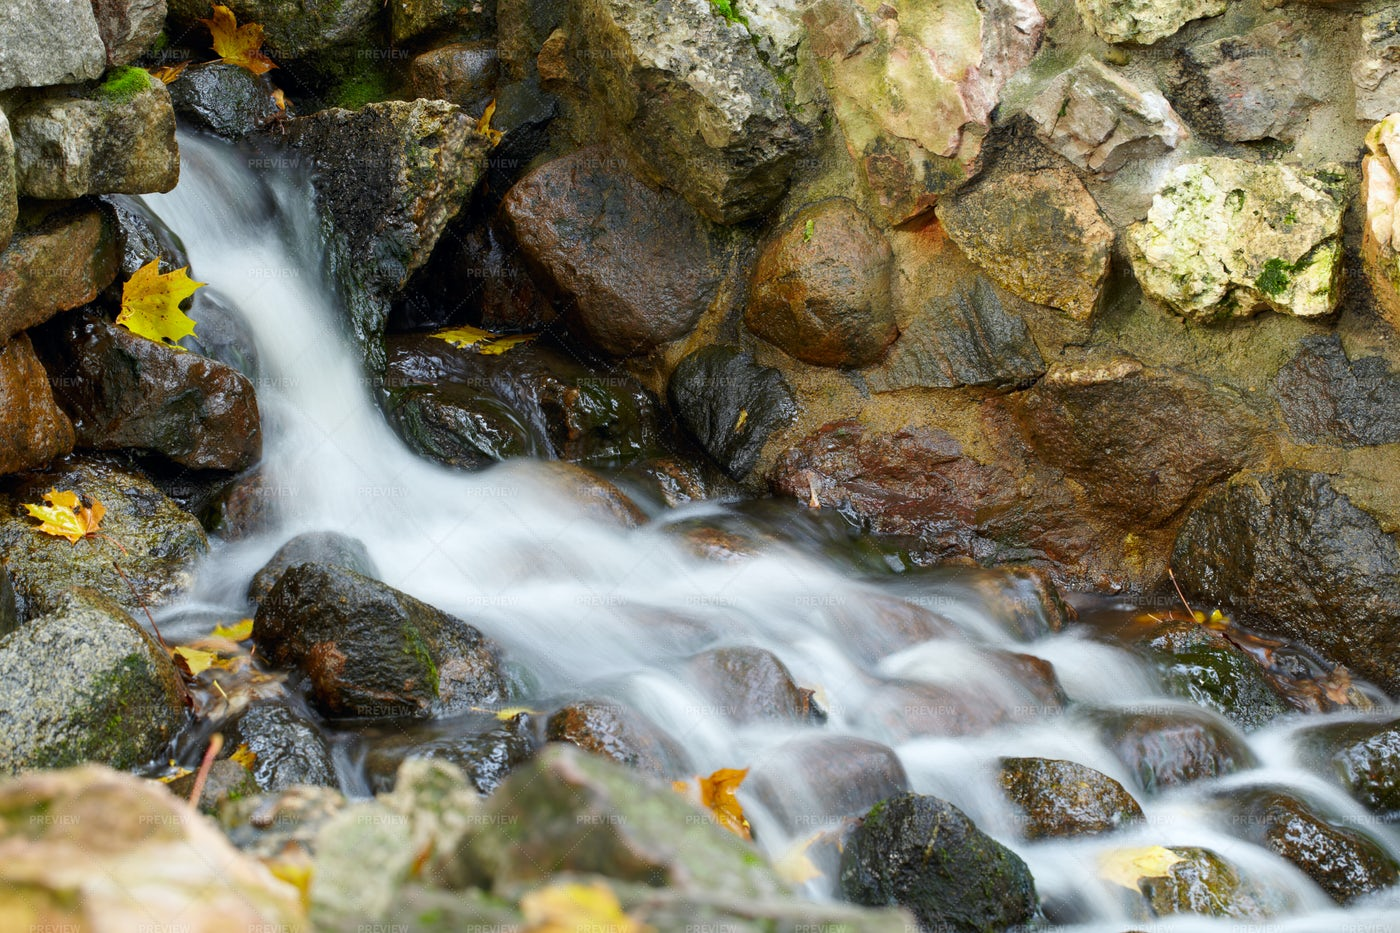 Creek With Running Water: Stock Photos